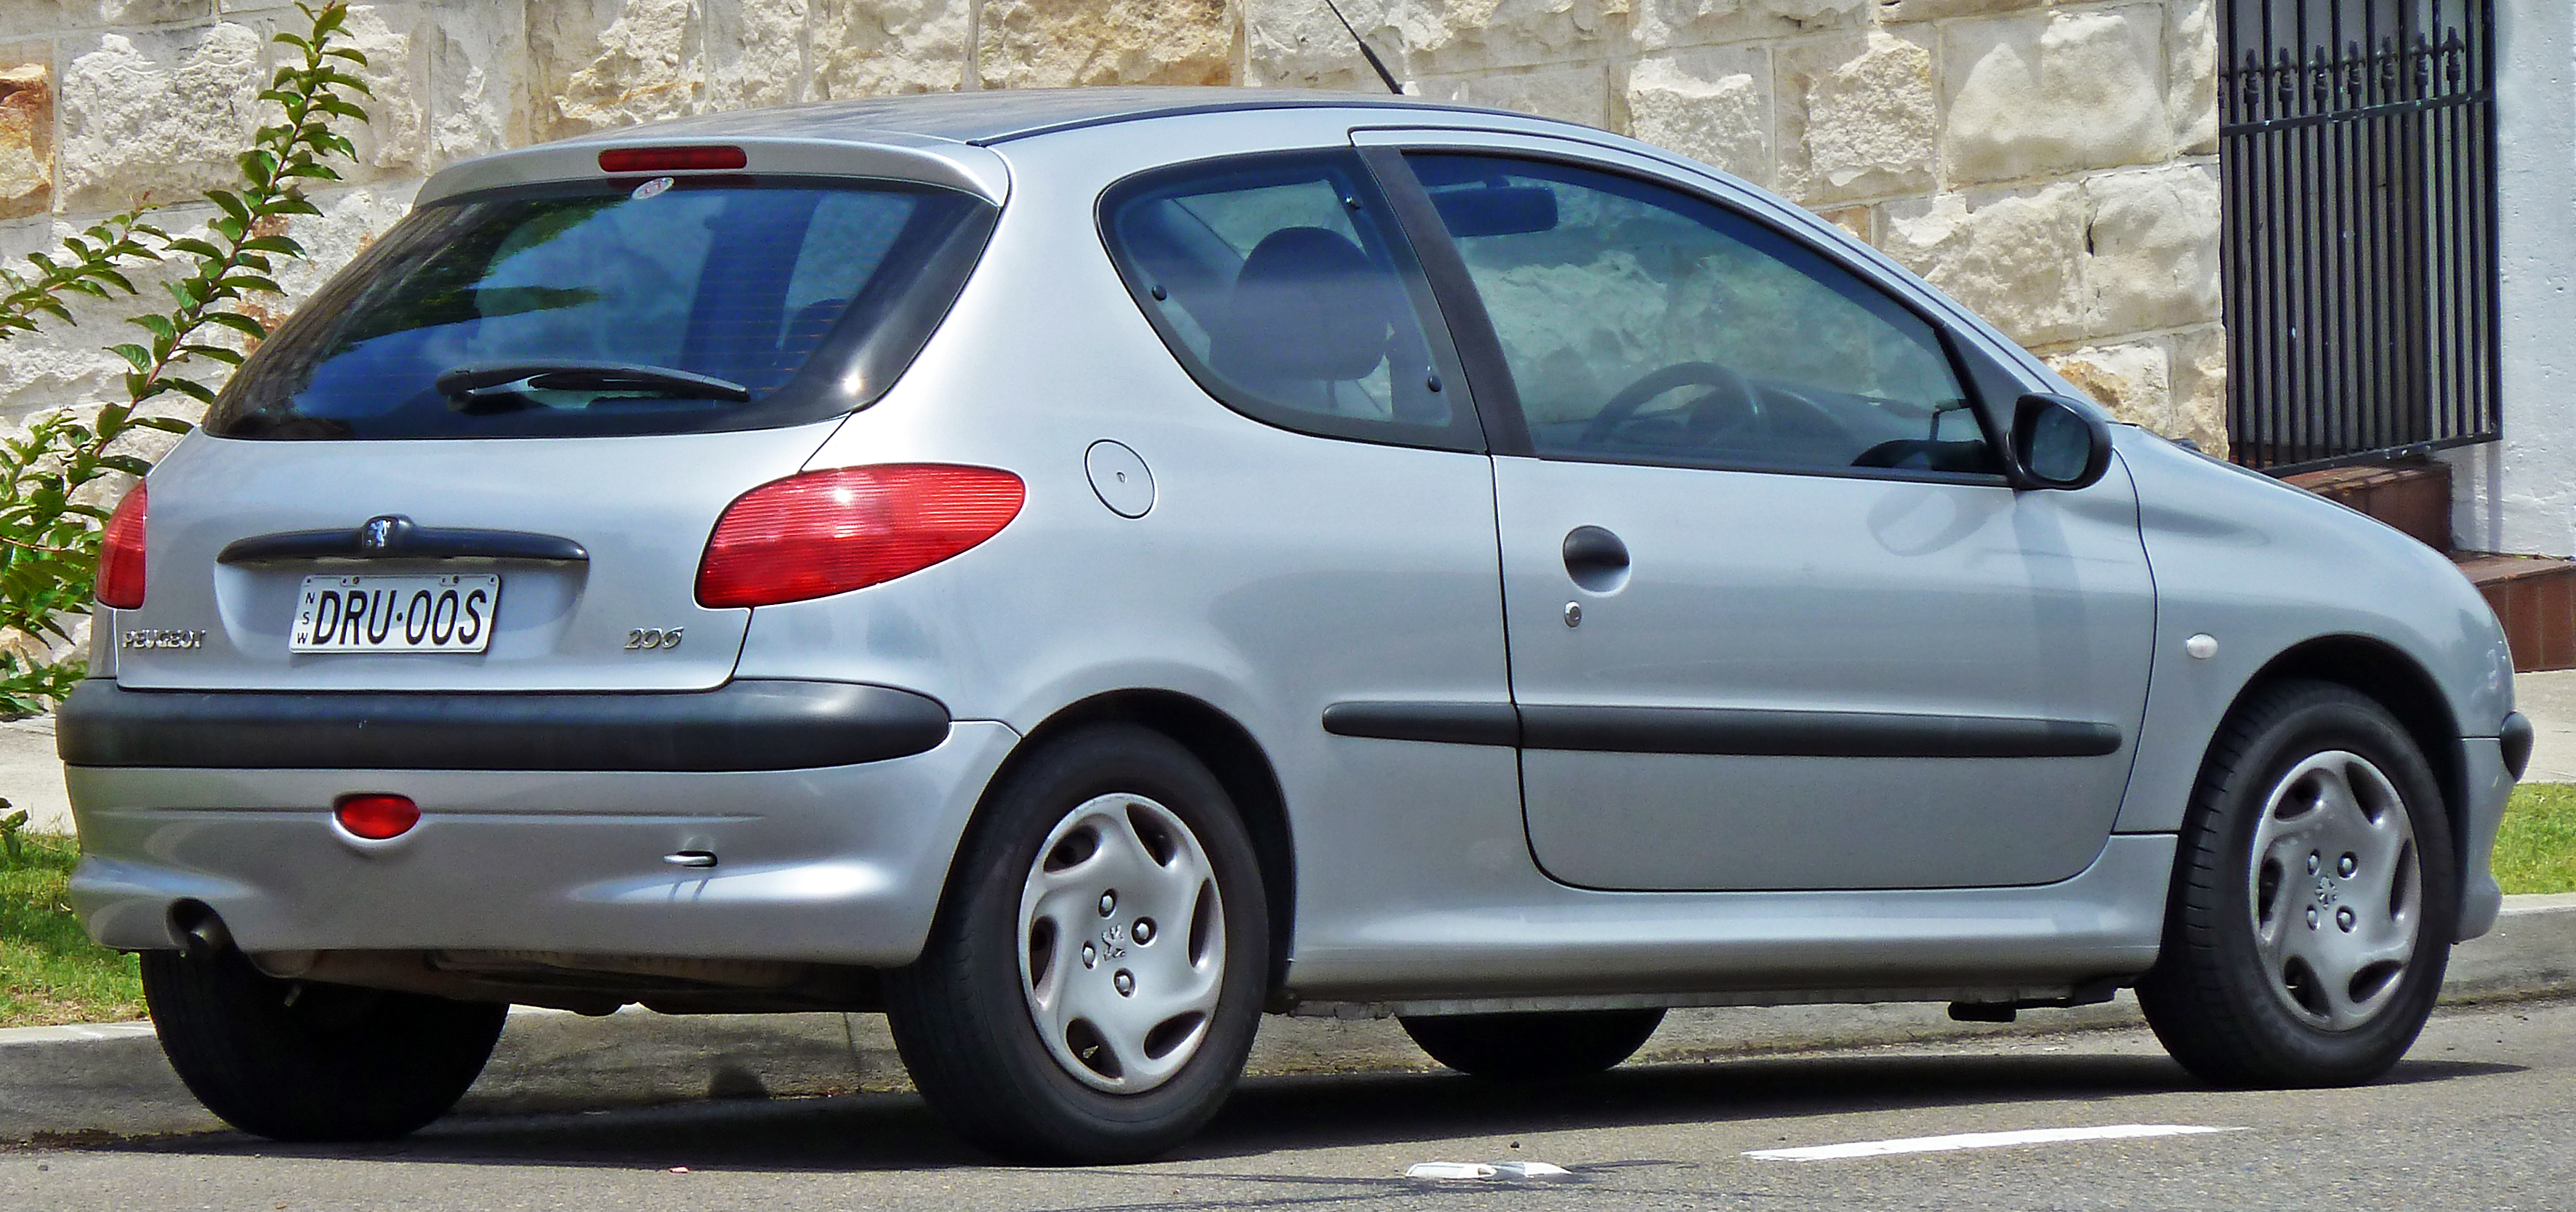 2011 Peugeot 206 – pictures, information and specs - Auto ...